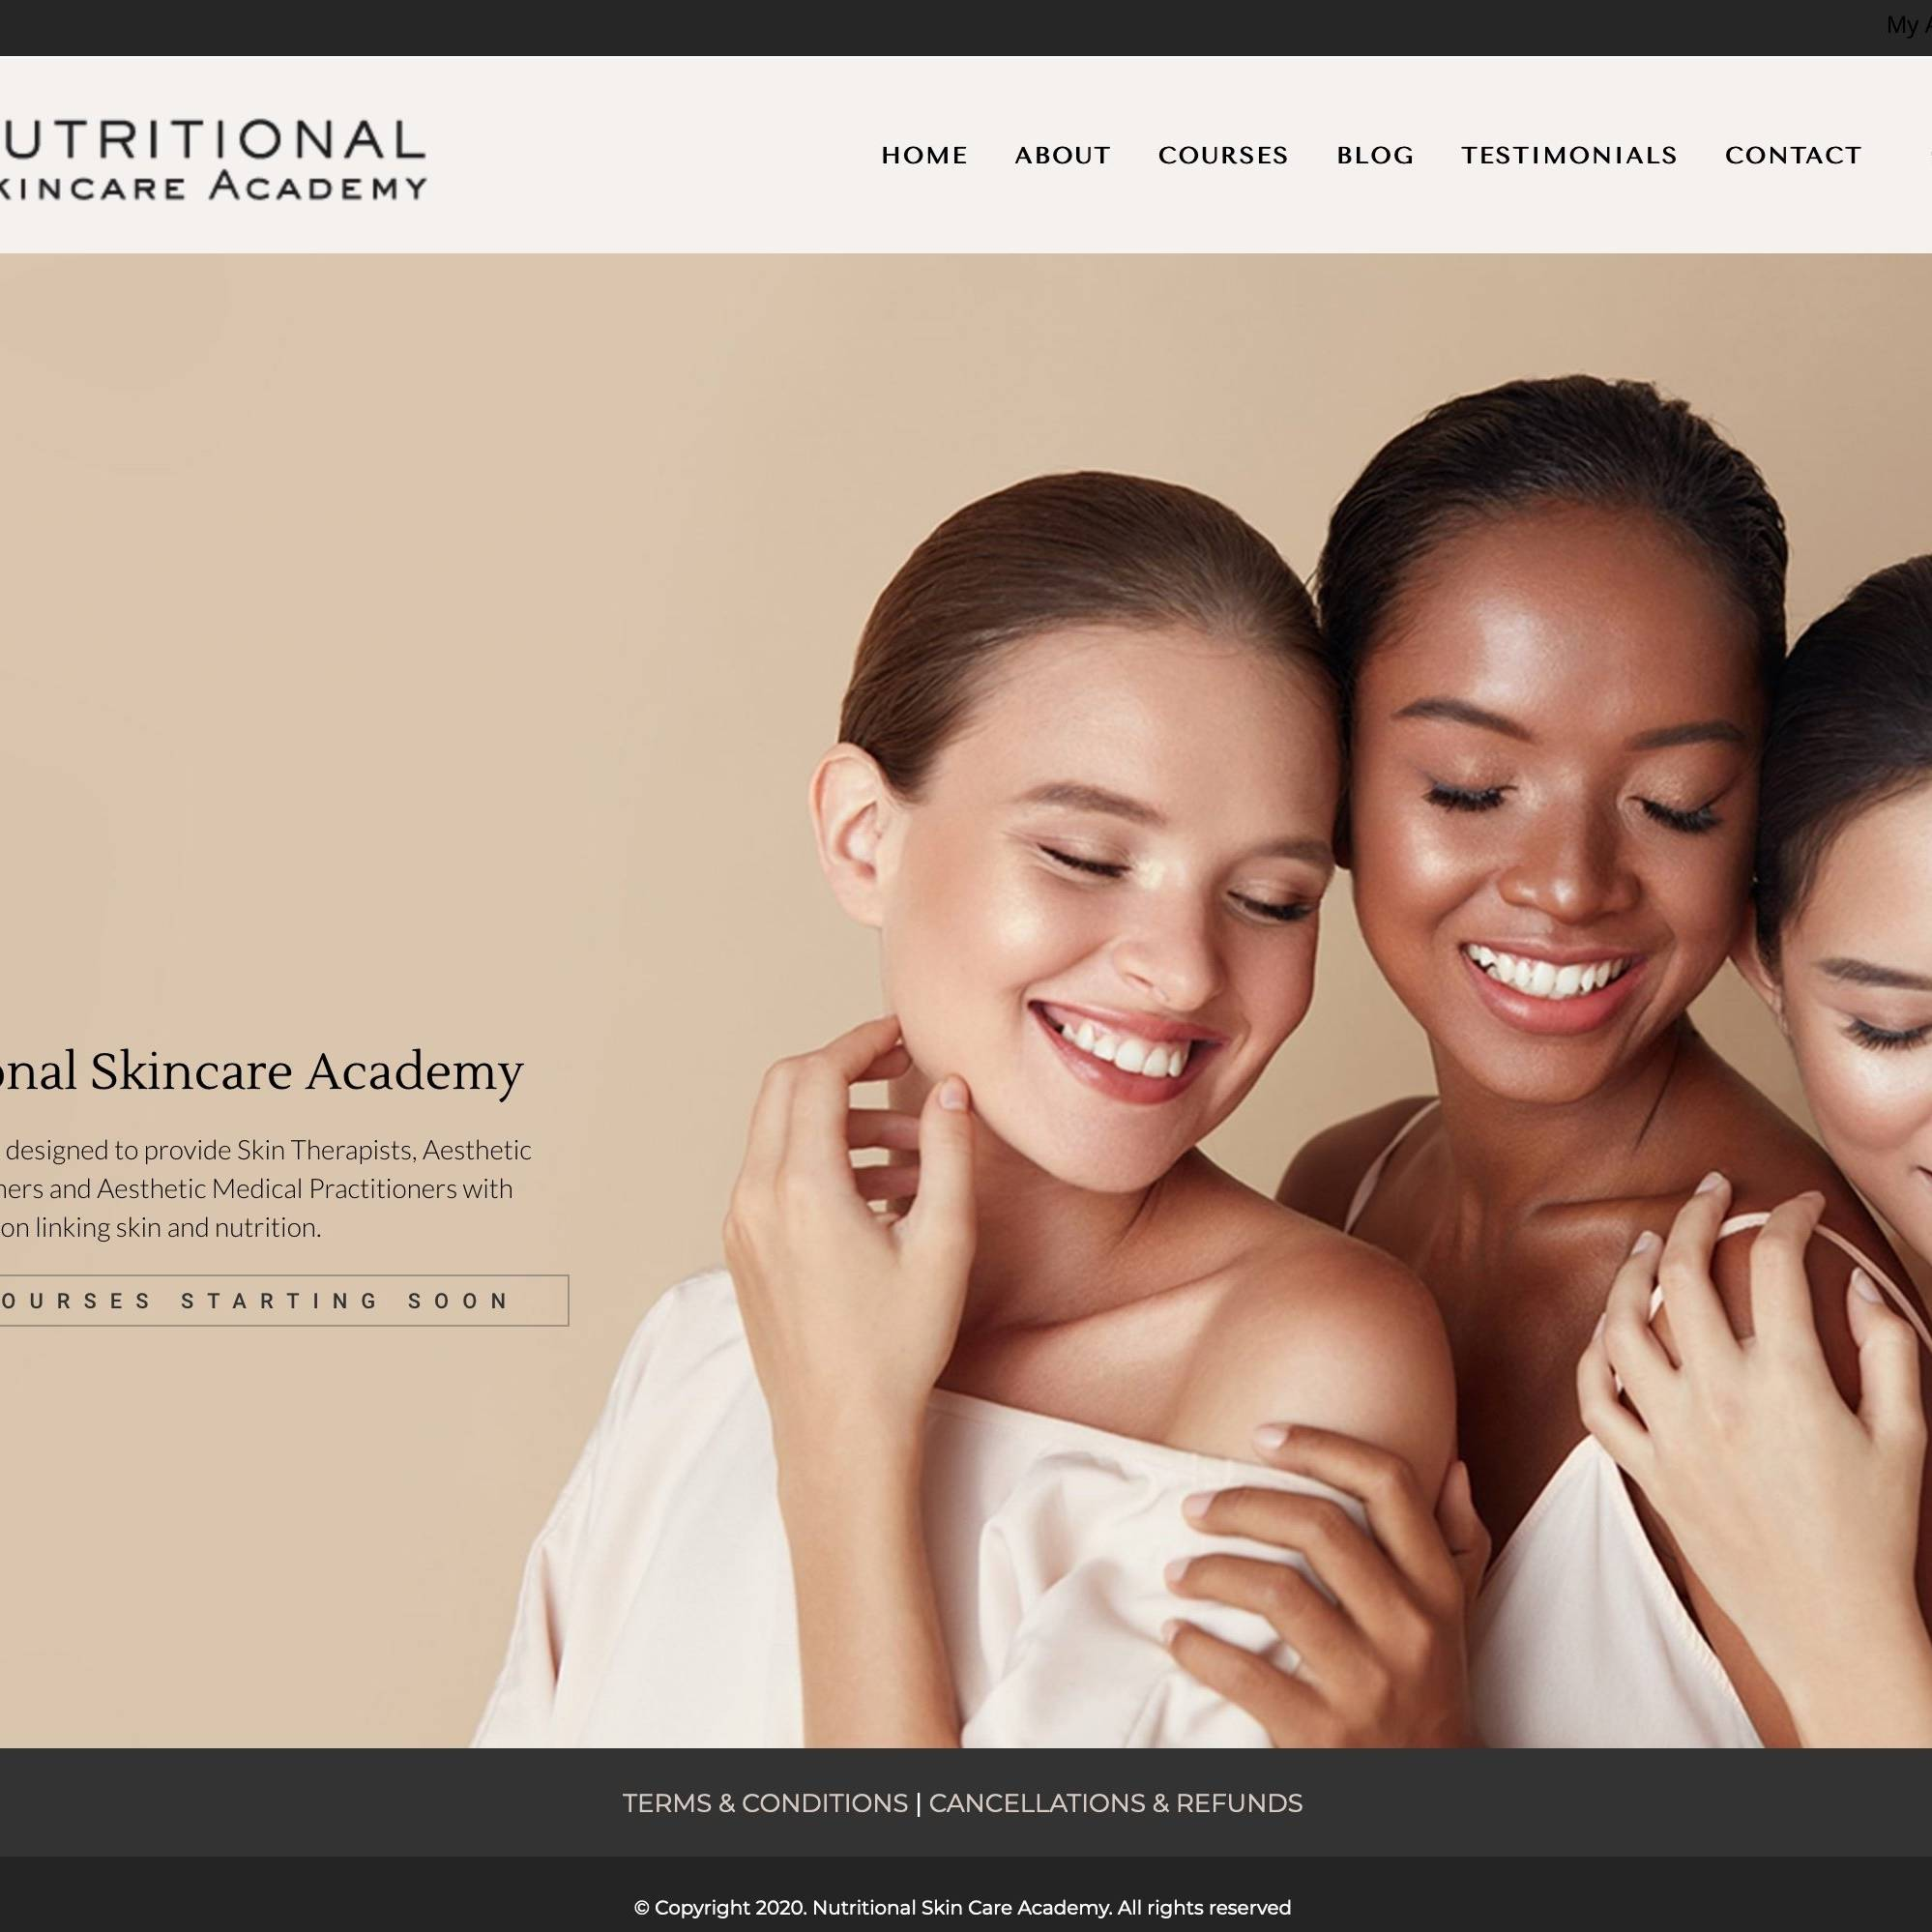 Nutritional Skincare Academy Site by The Creative Solutionist